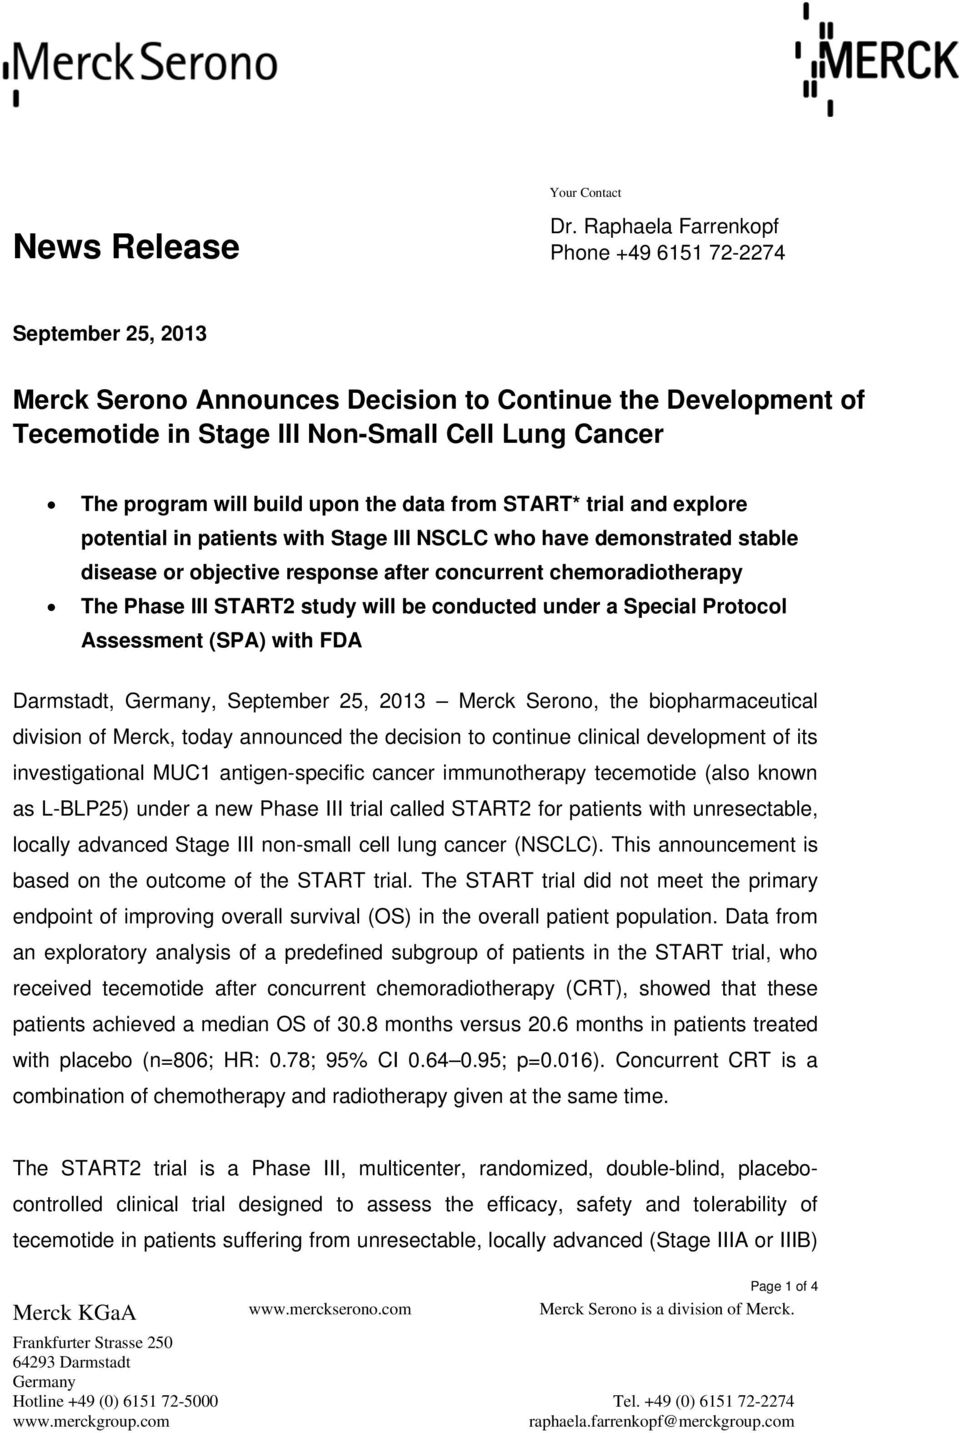 upon the data from START* trial and explore potential in patients with Stage III NSCLC who have demonstrated stable disease or objective response after concurrent chemoradiotherapy The Phase III